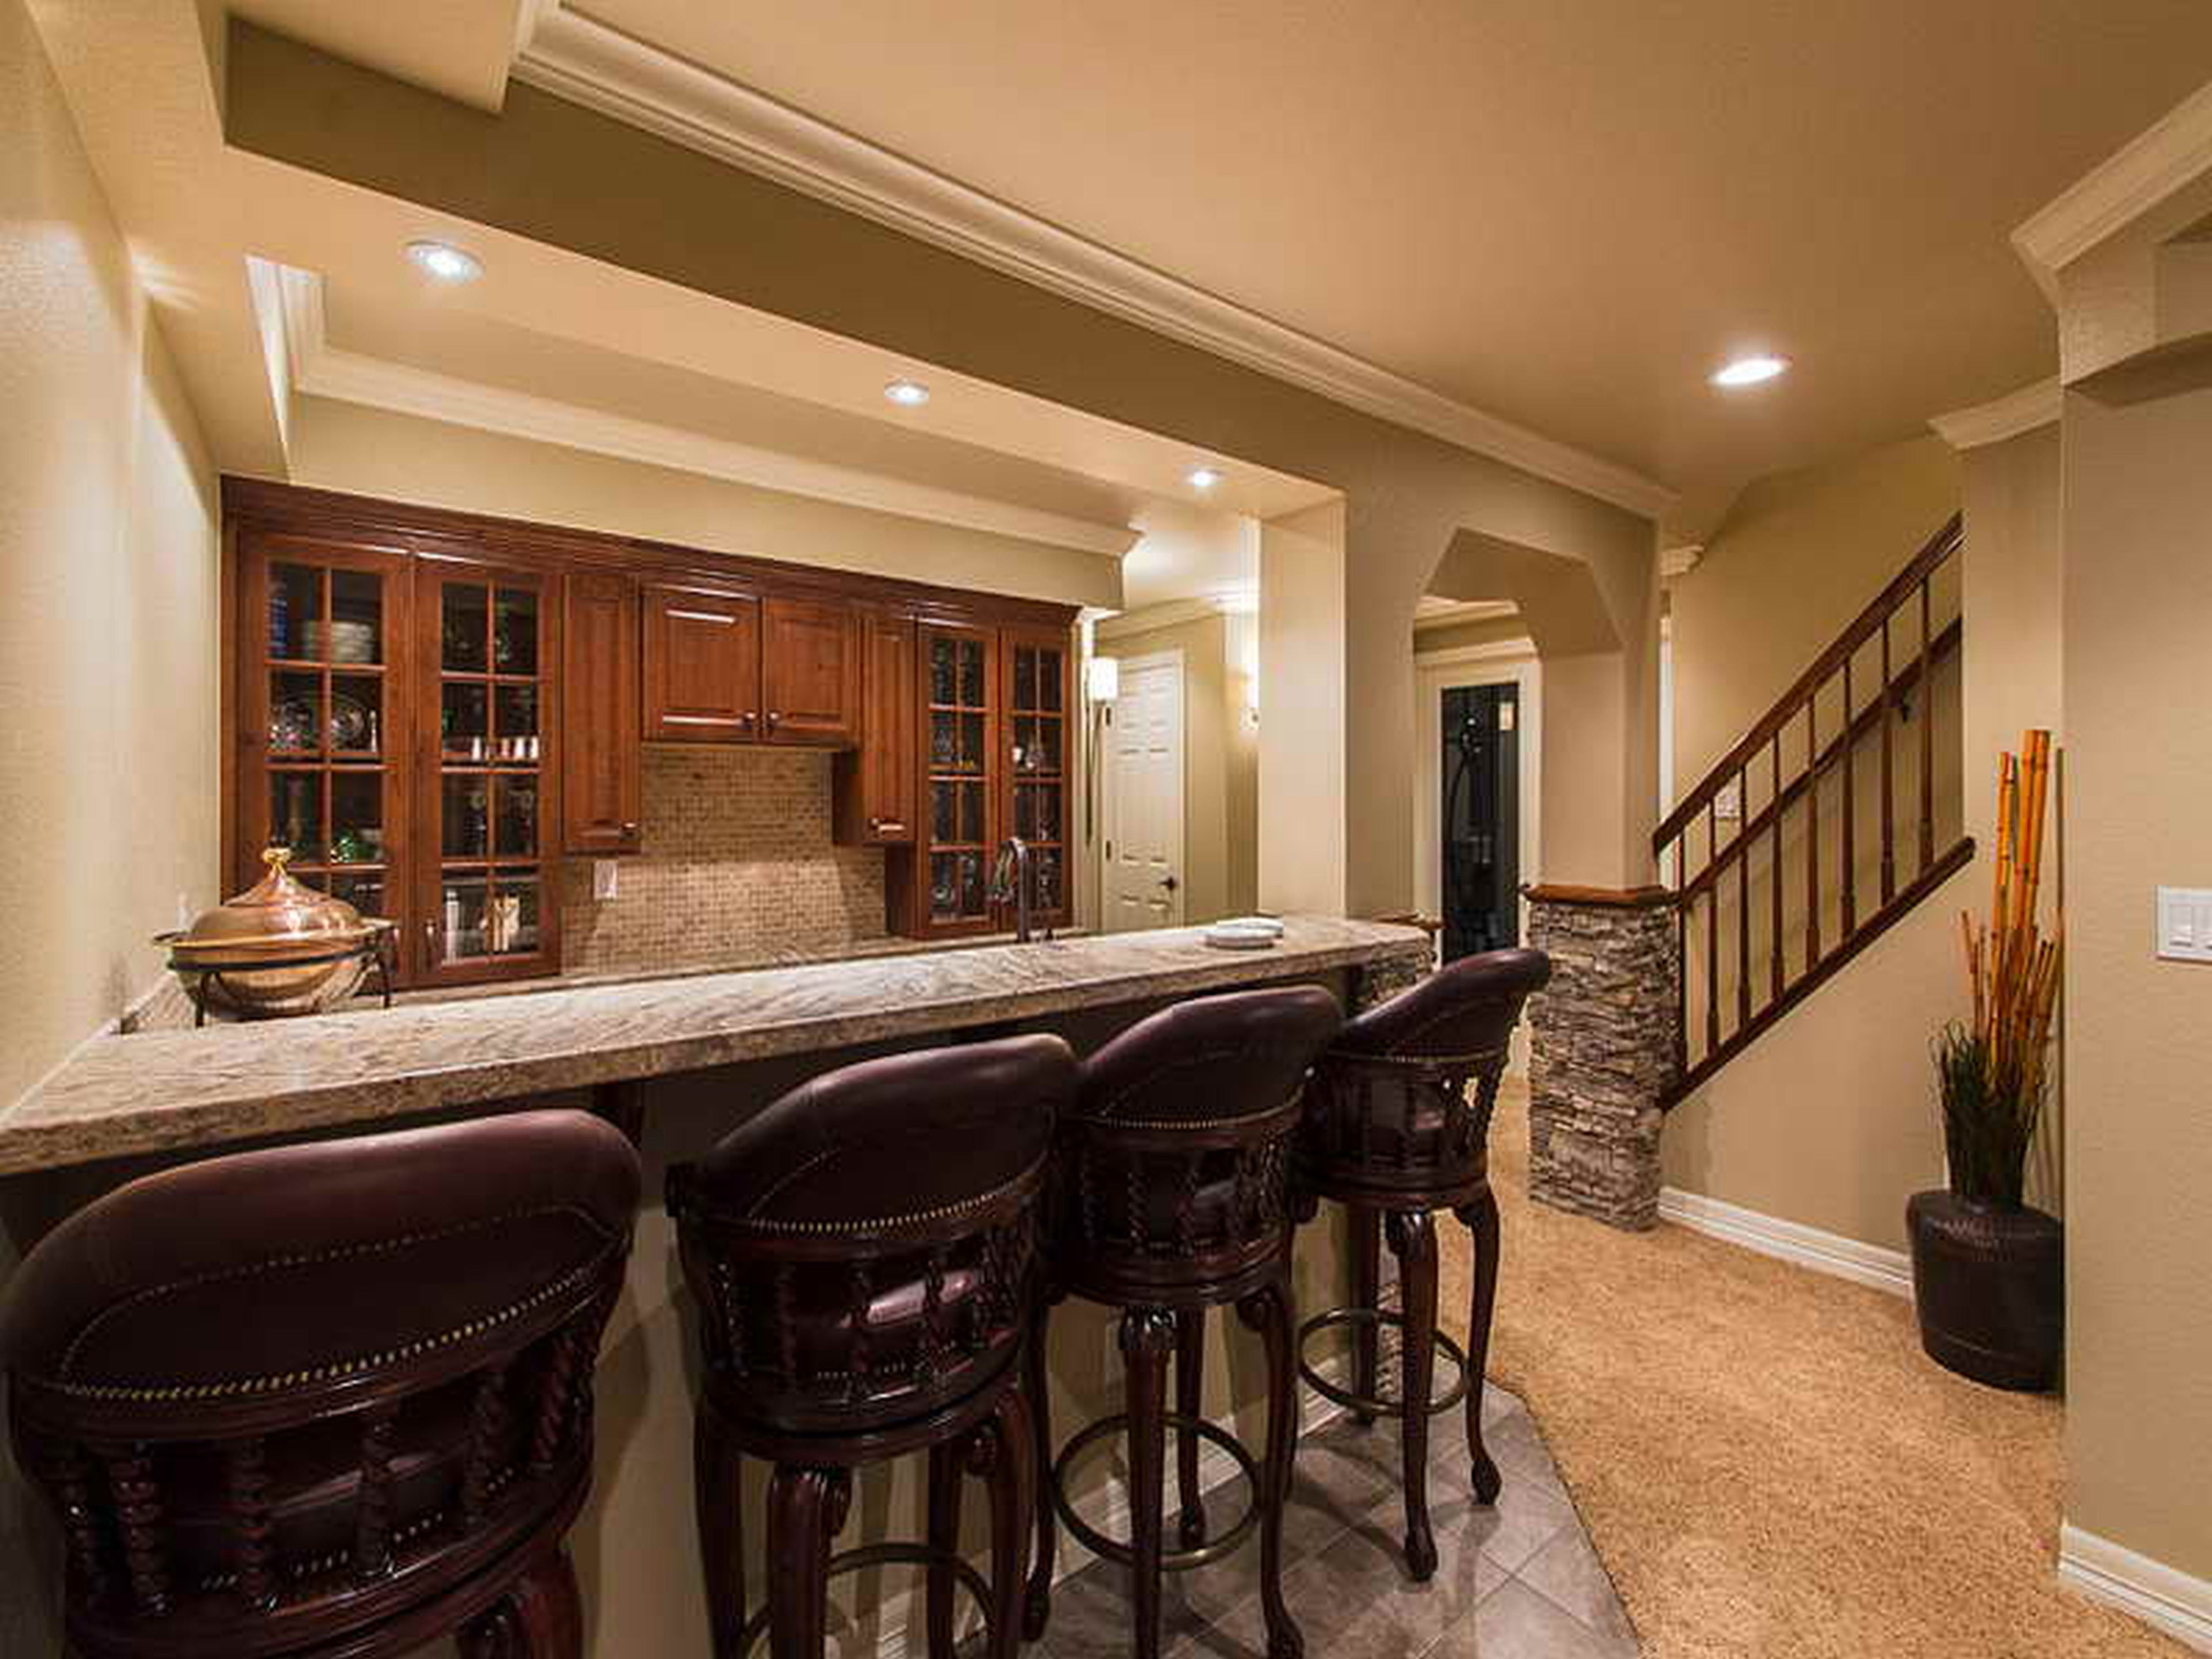 ceiling ceiling renovation ideas charming small basement kitchen